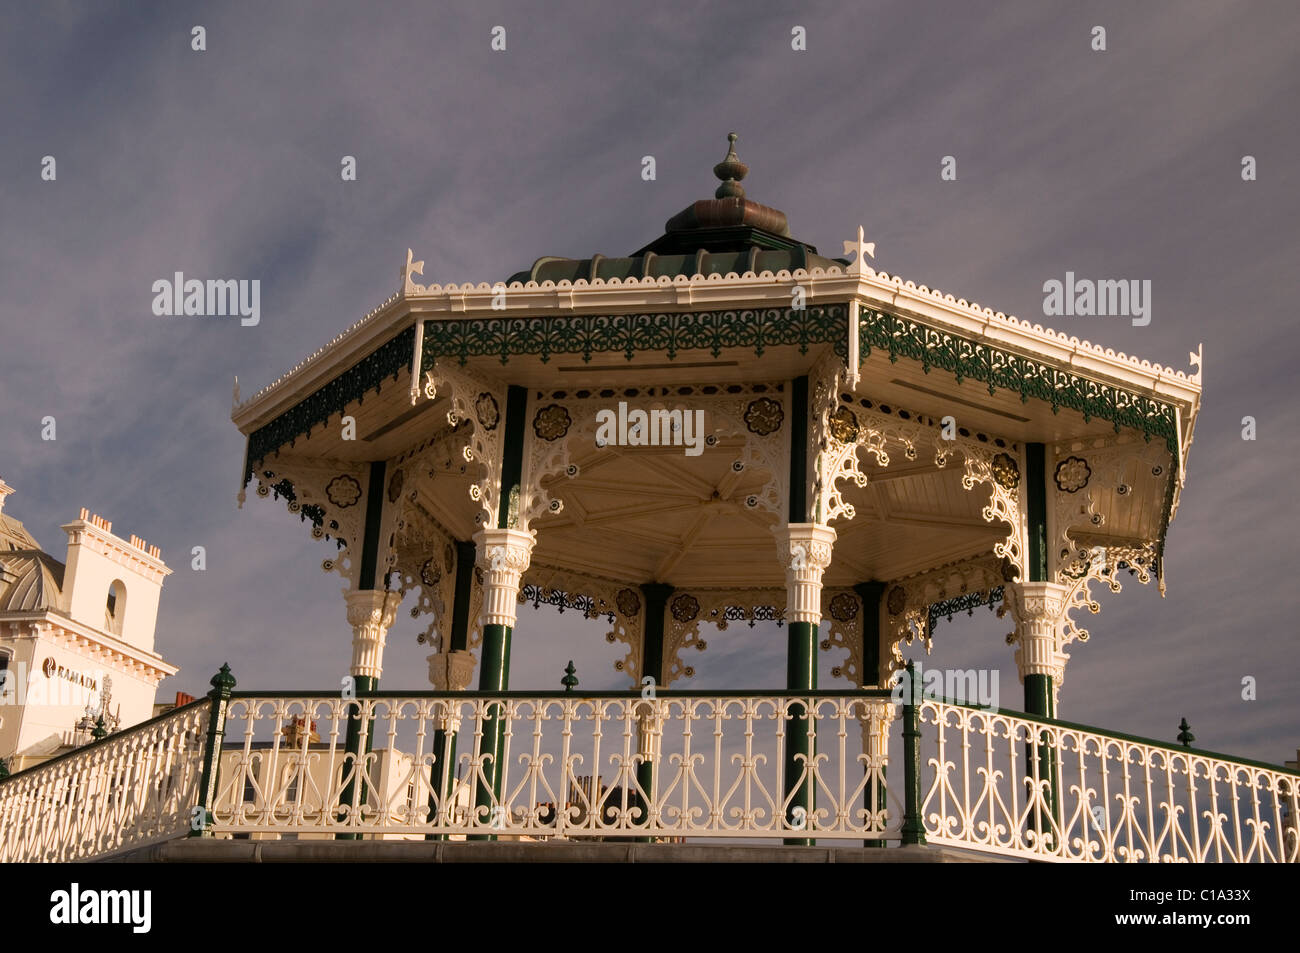 The Bandstand at Brighton Seafront Brighton Sussex England UK - Stock Image